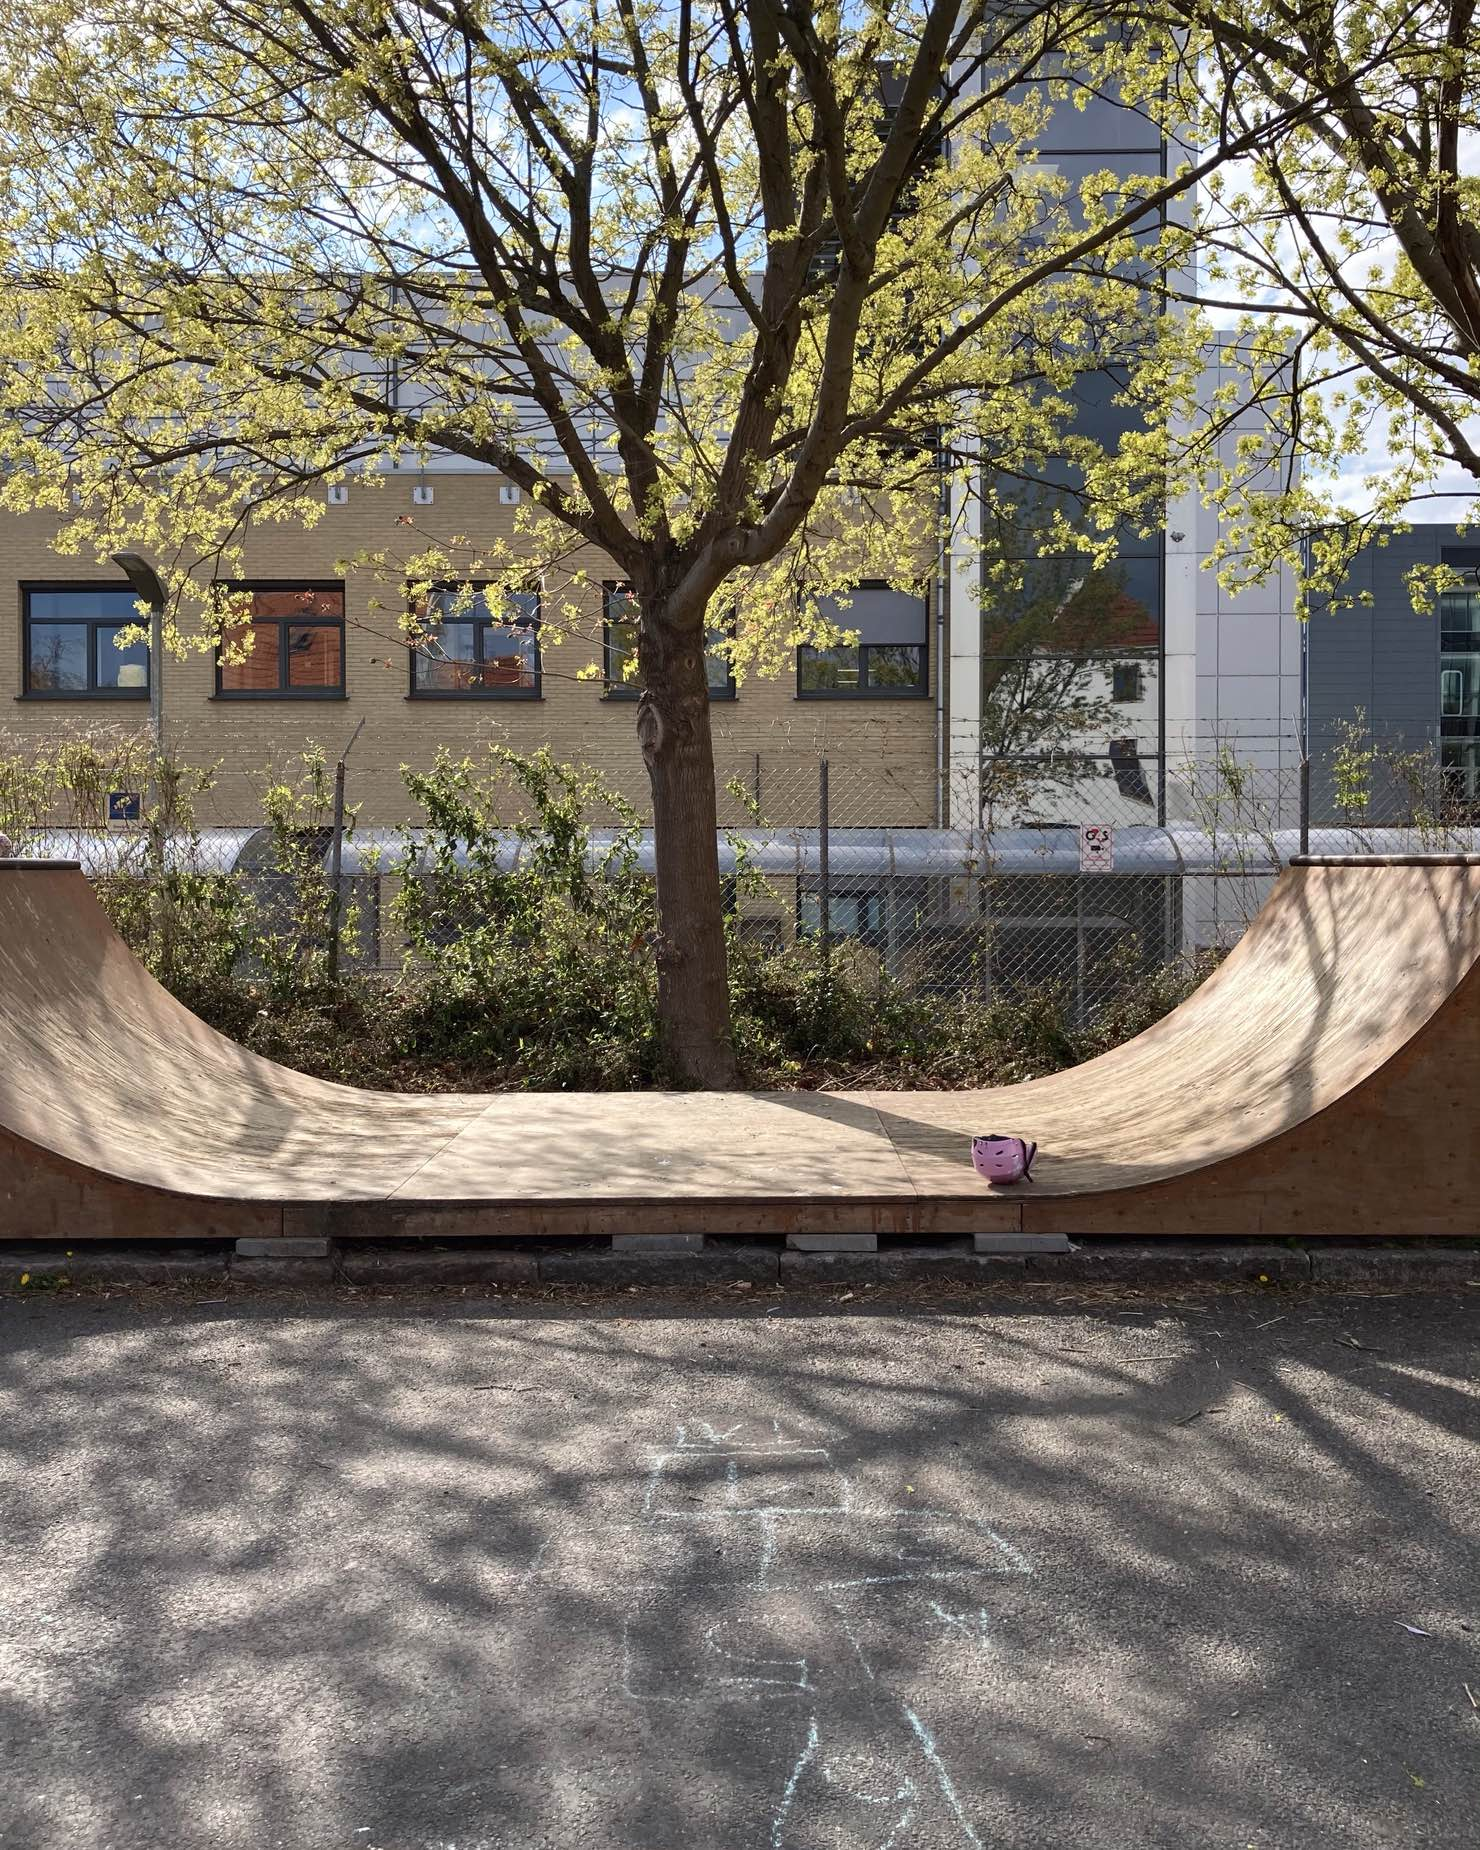 Skateboard ramp. Under a tree. Shadows from the tree. Hopscotch on the asphalt in front of it. Afternoon sun.